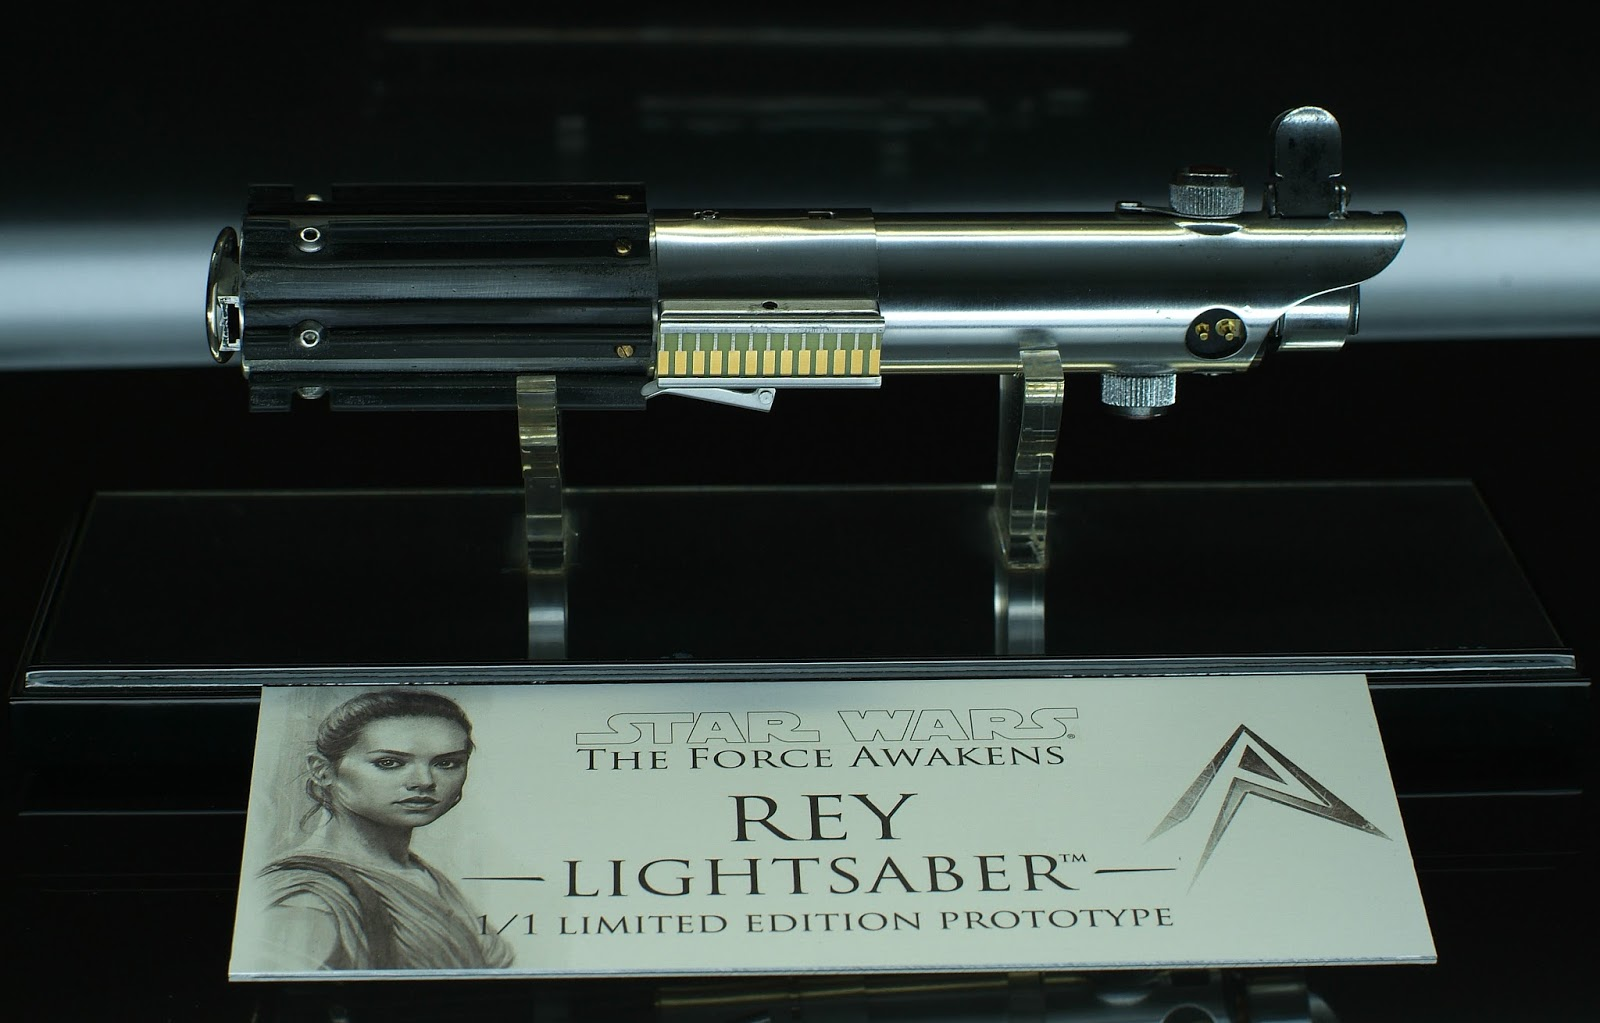 REY Lightsaber The Force Awakens